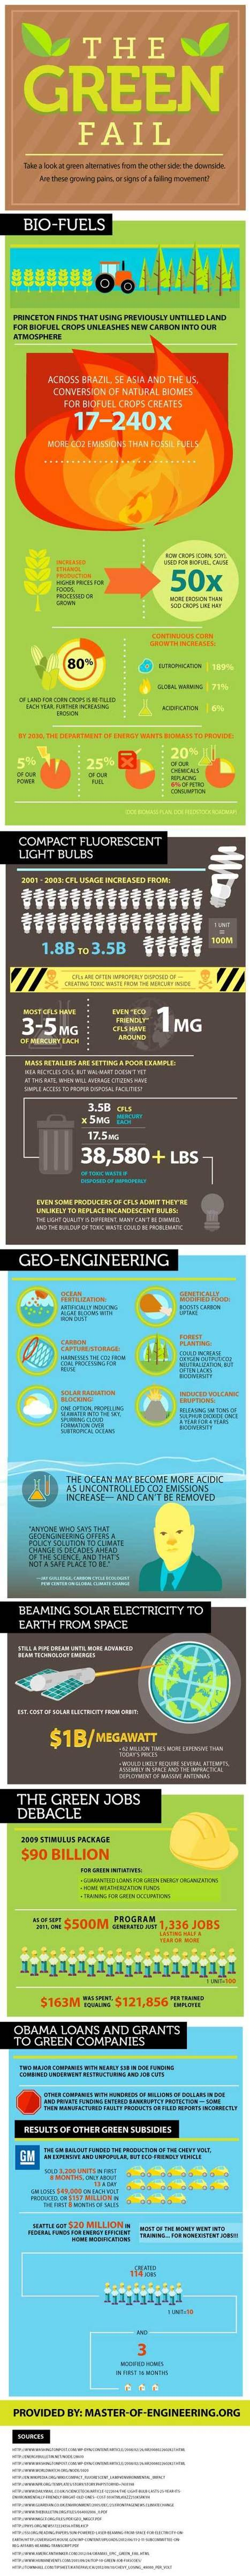 The Green Fail Infographic | Energy Hack | Sustainability by Design | Scoop.it